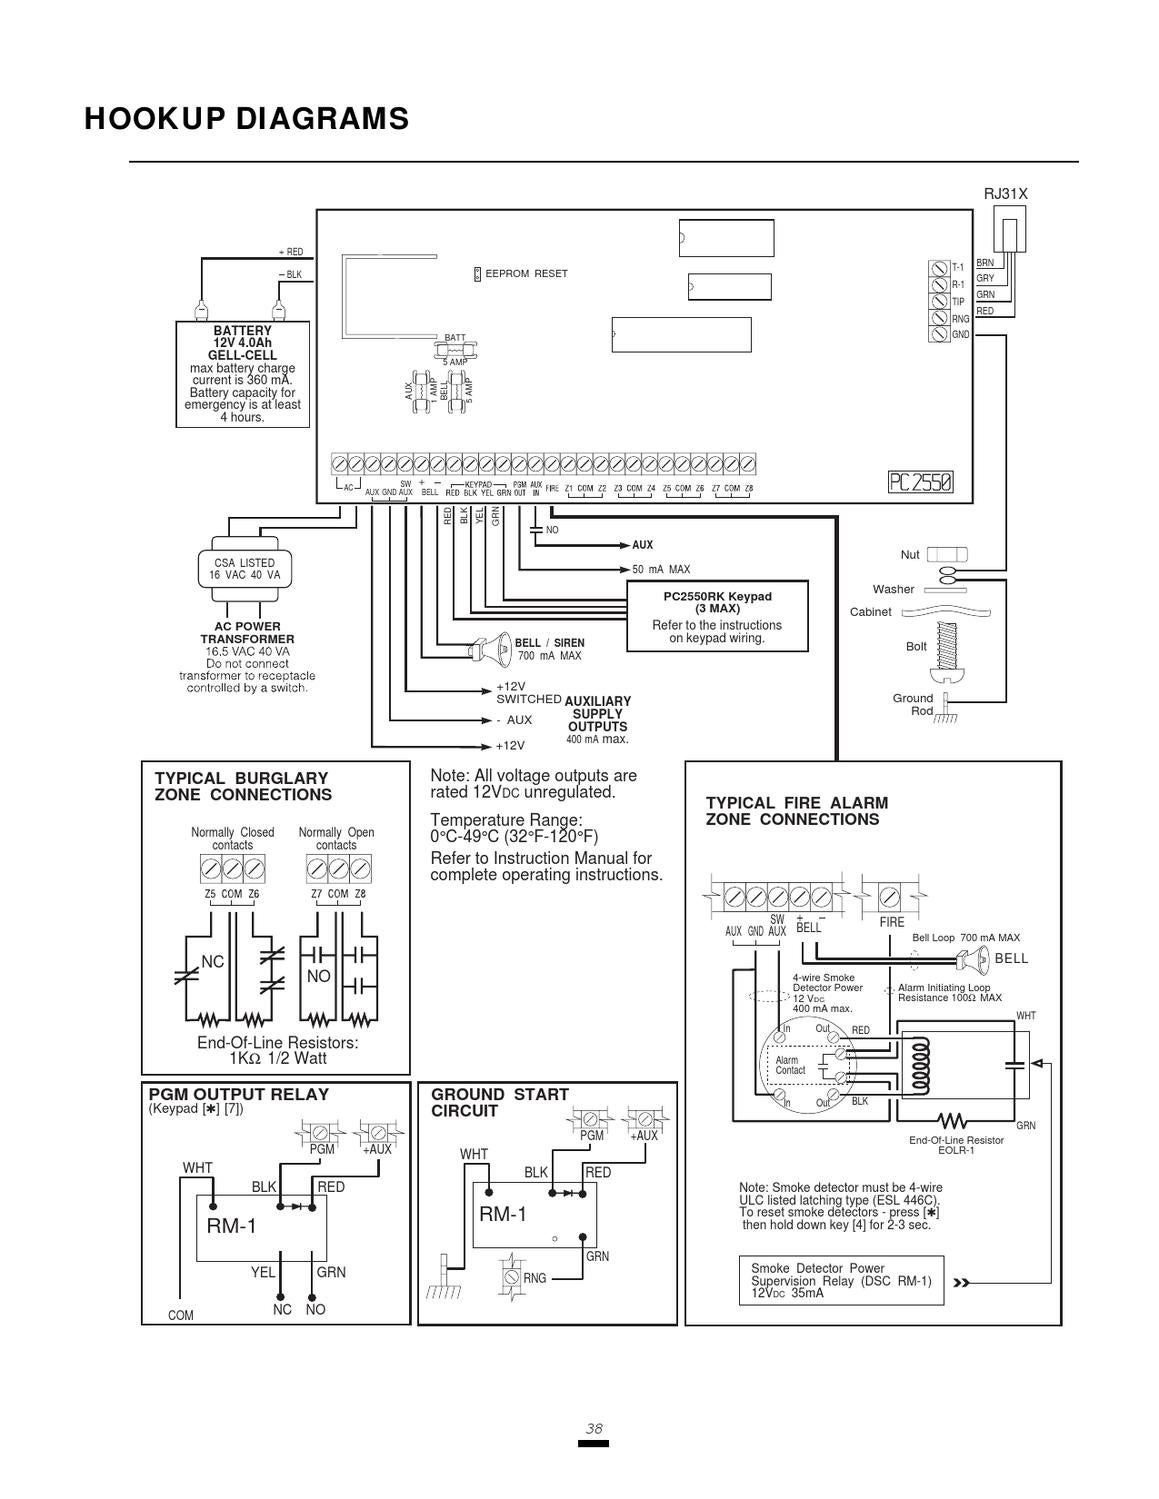 hight resolution of dsc 1500 wiring diagram wiring diagramdsc 1500 wiring diagram wiring diagramdsc pc1500 installation manualpc1500 user manual